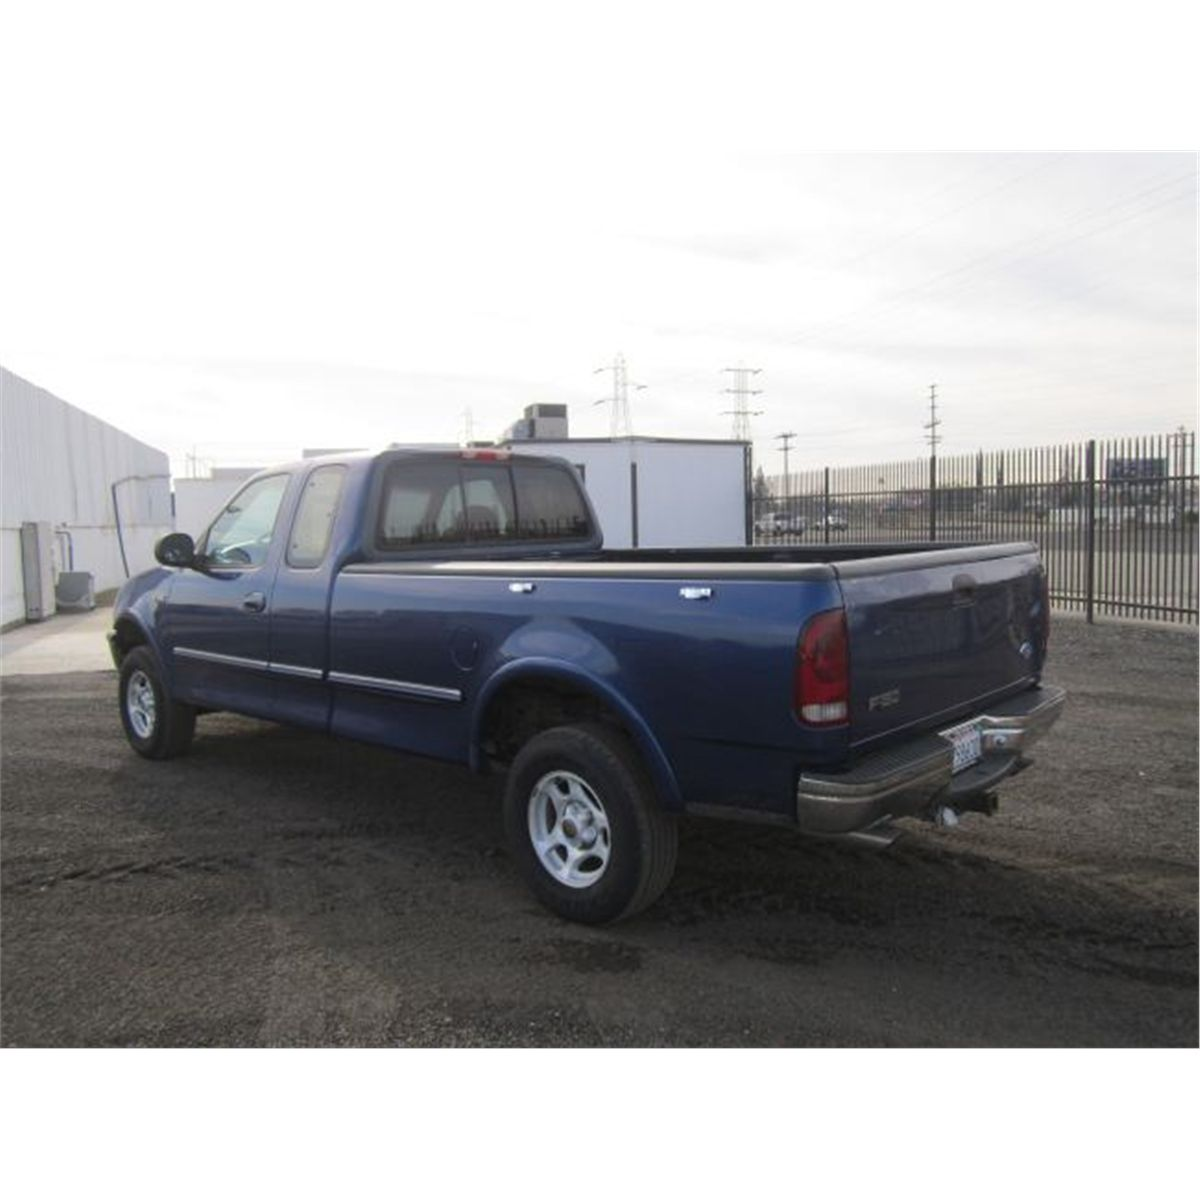 1996 ford f150 extended cab 4x4 pickup truck. Black Bedroom Furniture Sets. Home Design Ideas